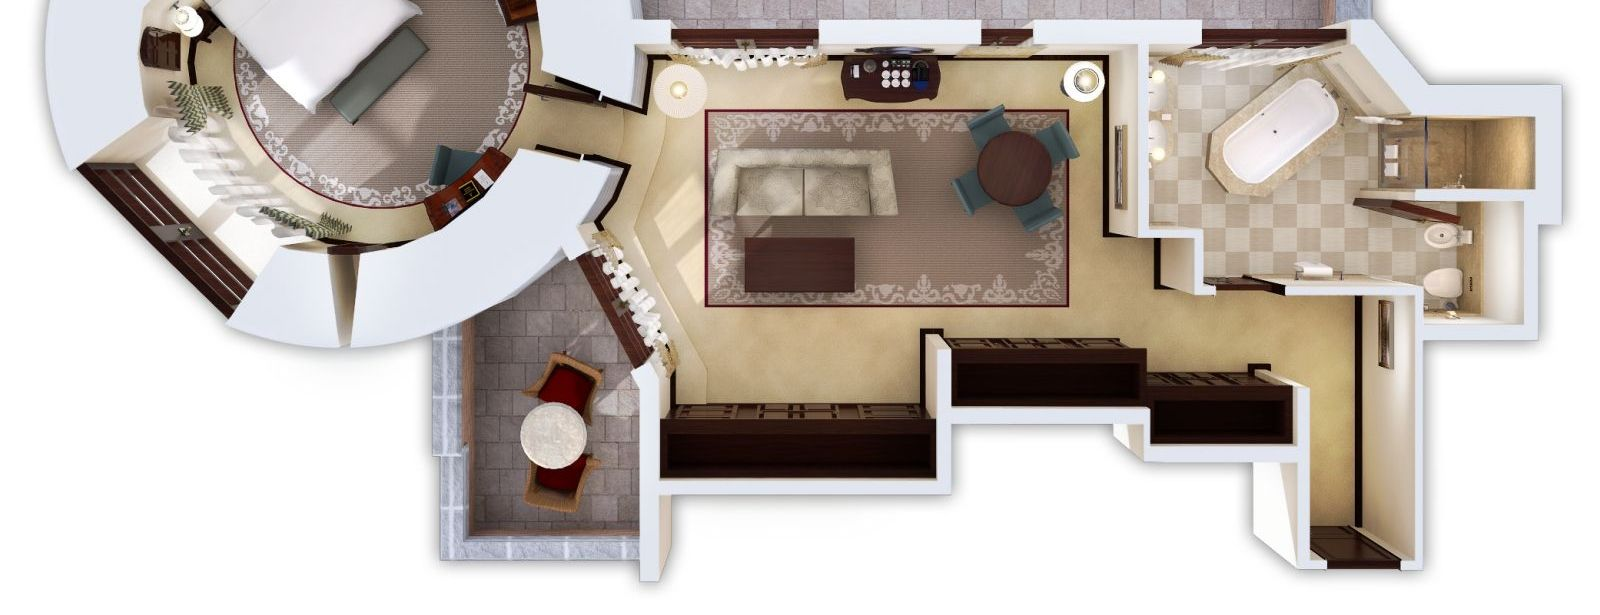 3D Floorplan of the Classic Suite